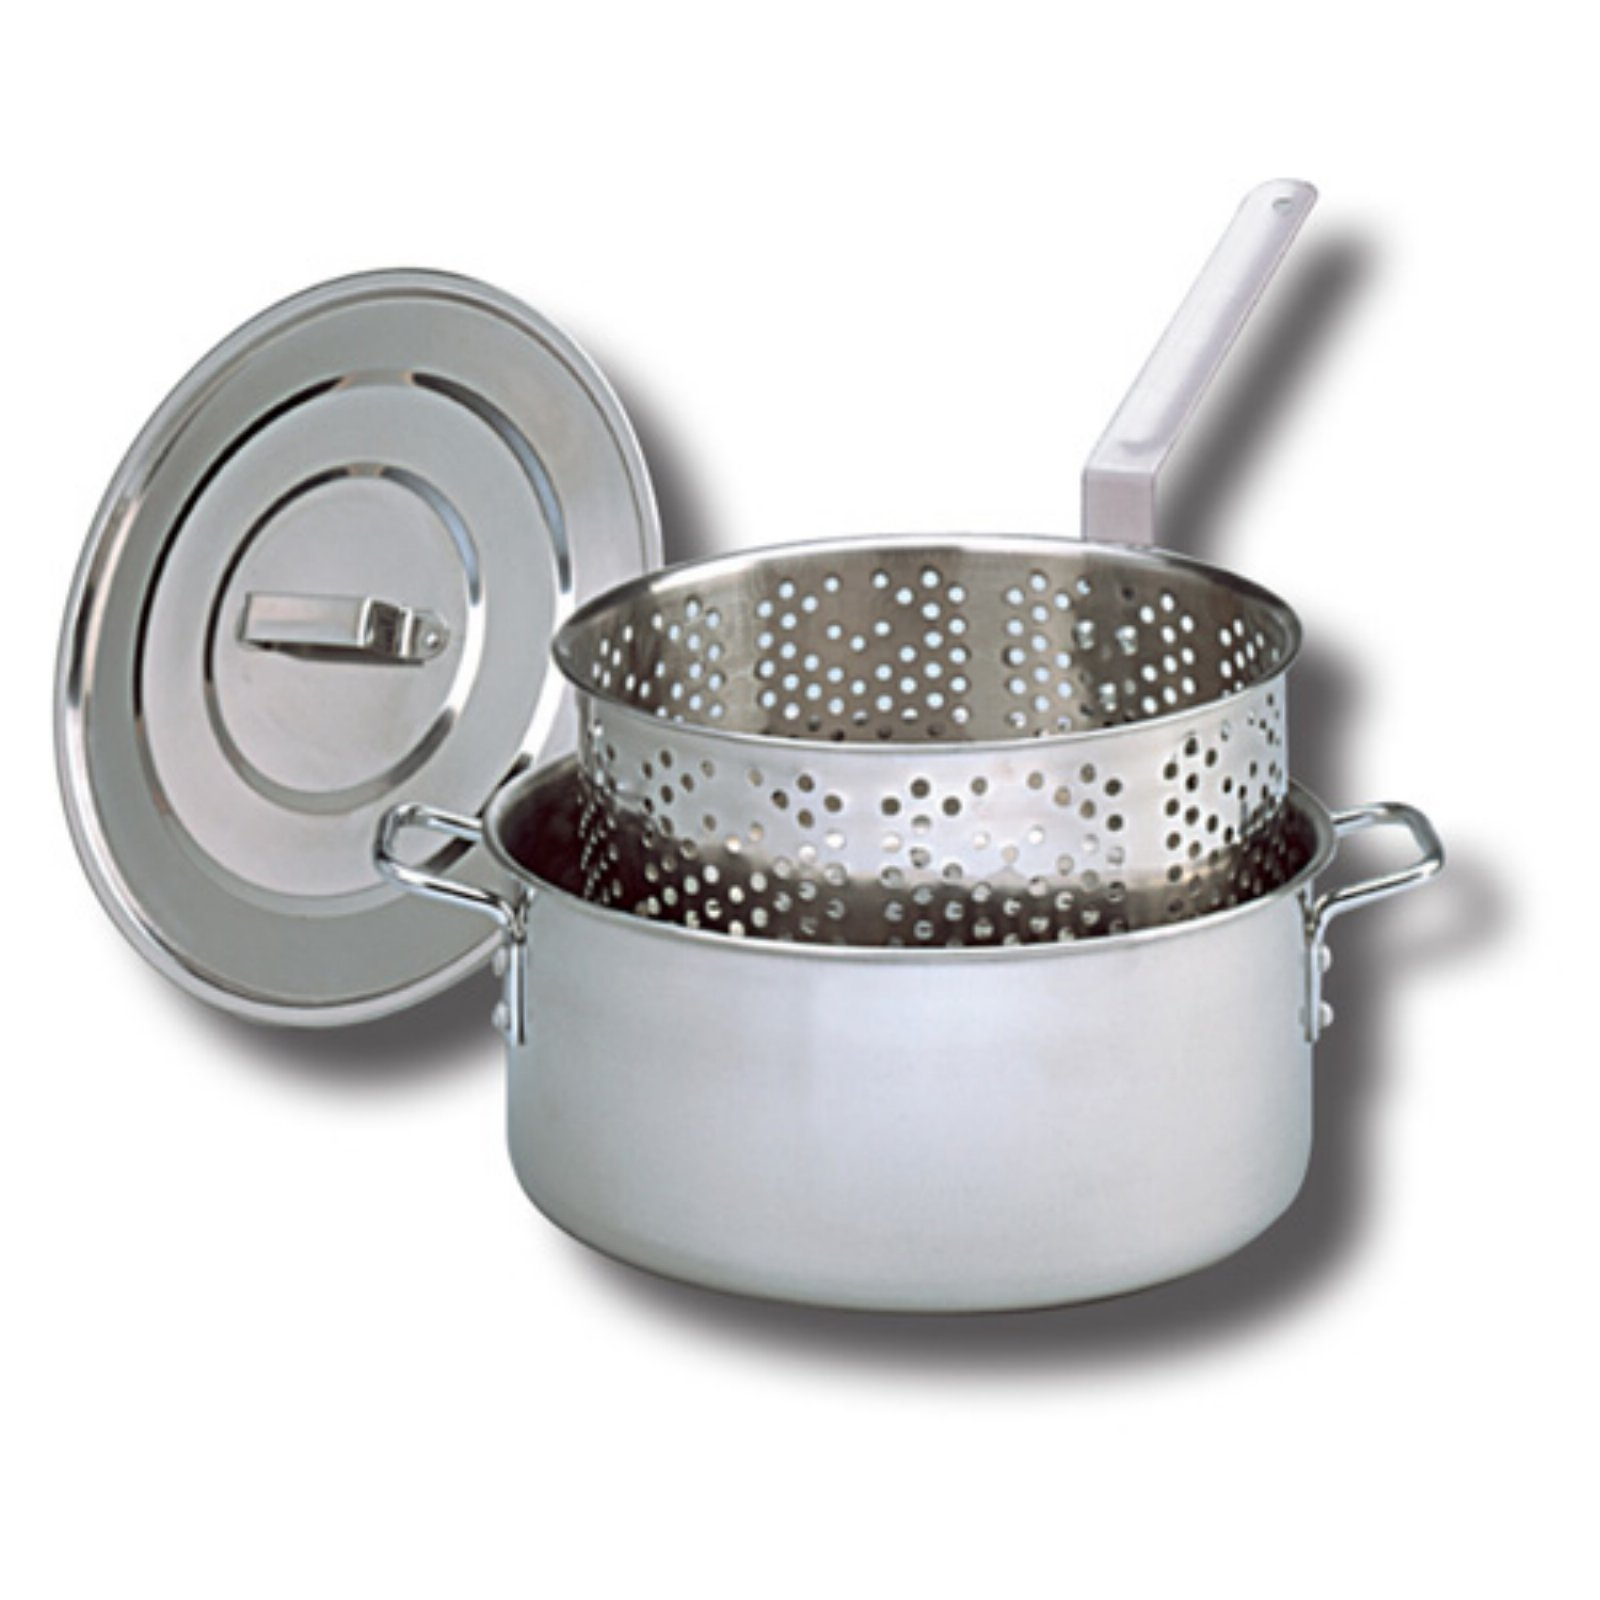 King Kooker Stainless Steel Fry Pan - 10 qt.